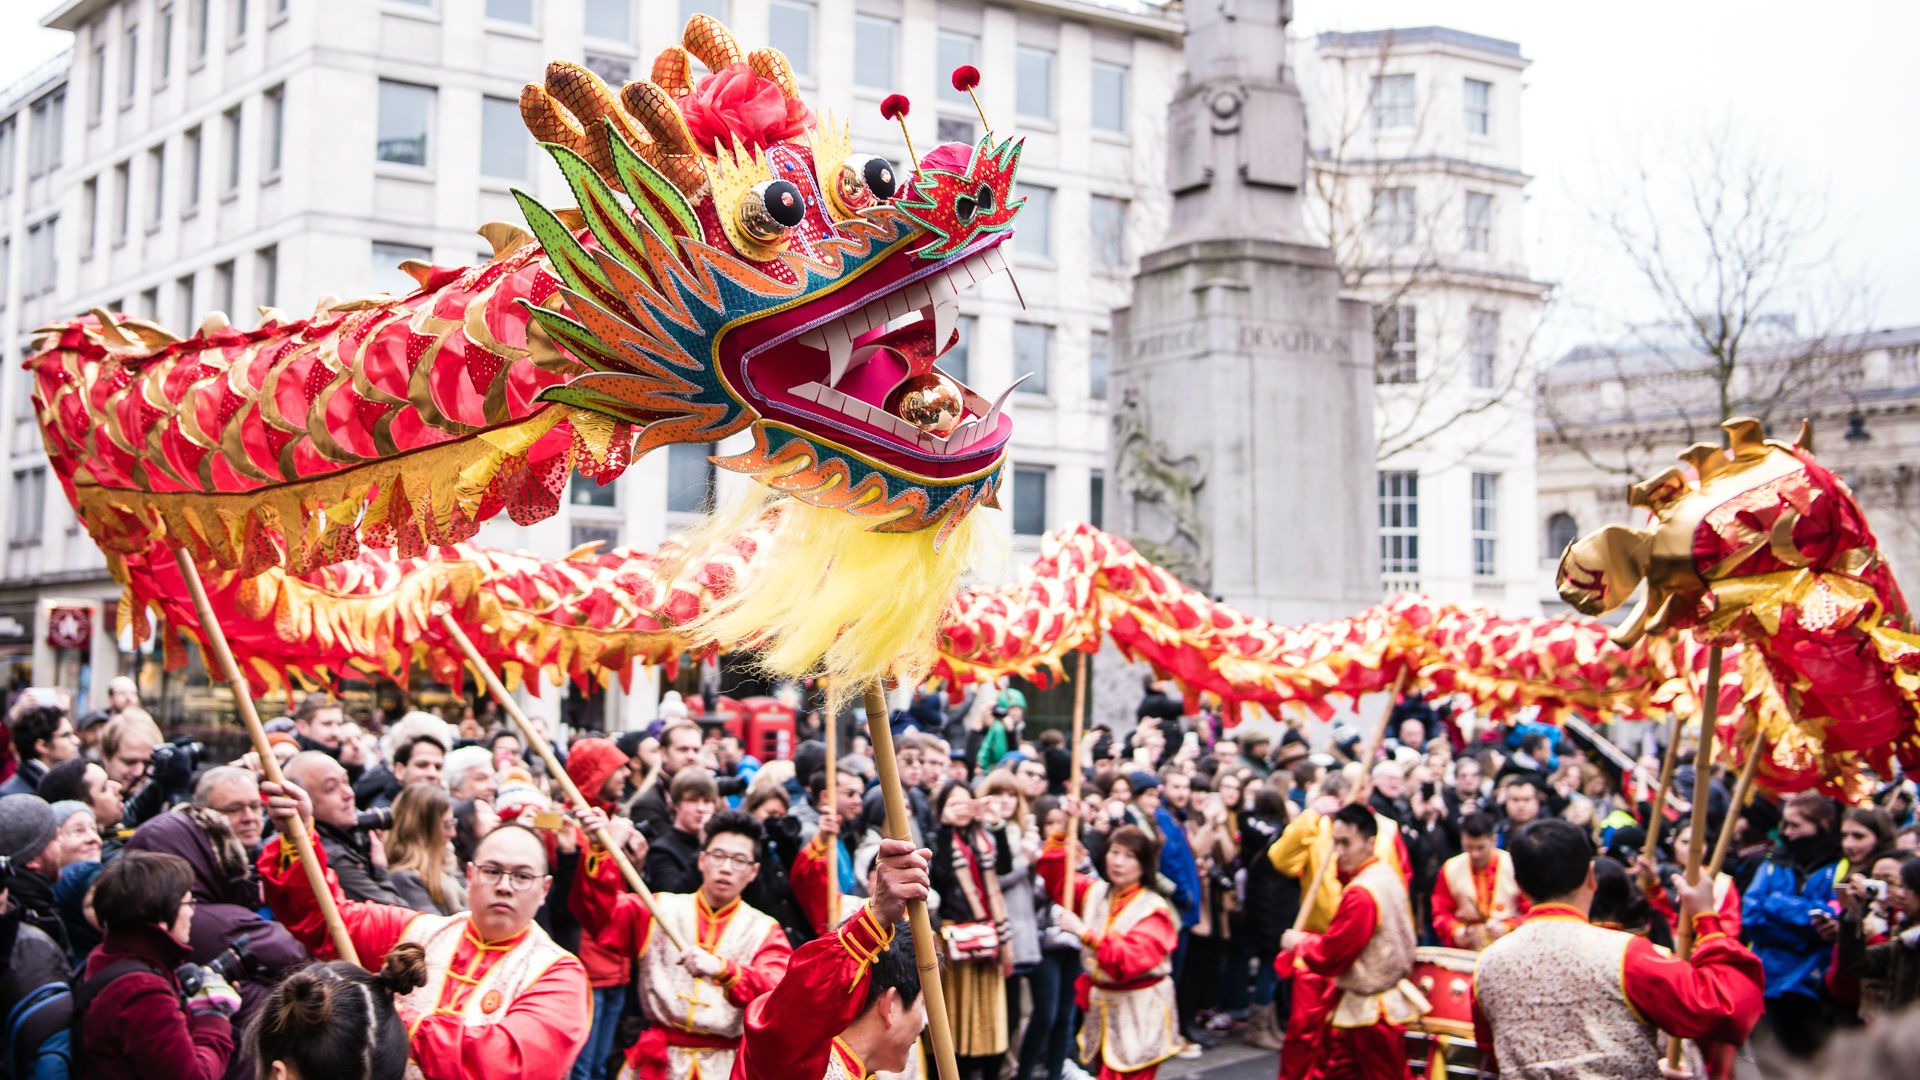 Chinese New Year 2018 in London   Special Event   visitlondon com Dragon dancers at Chinese New Year celebrations in London  Photo  Jon Mo    LCCA